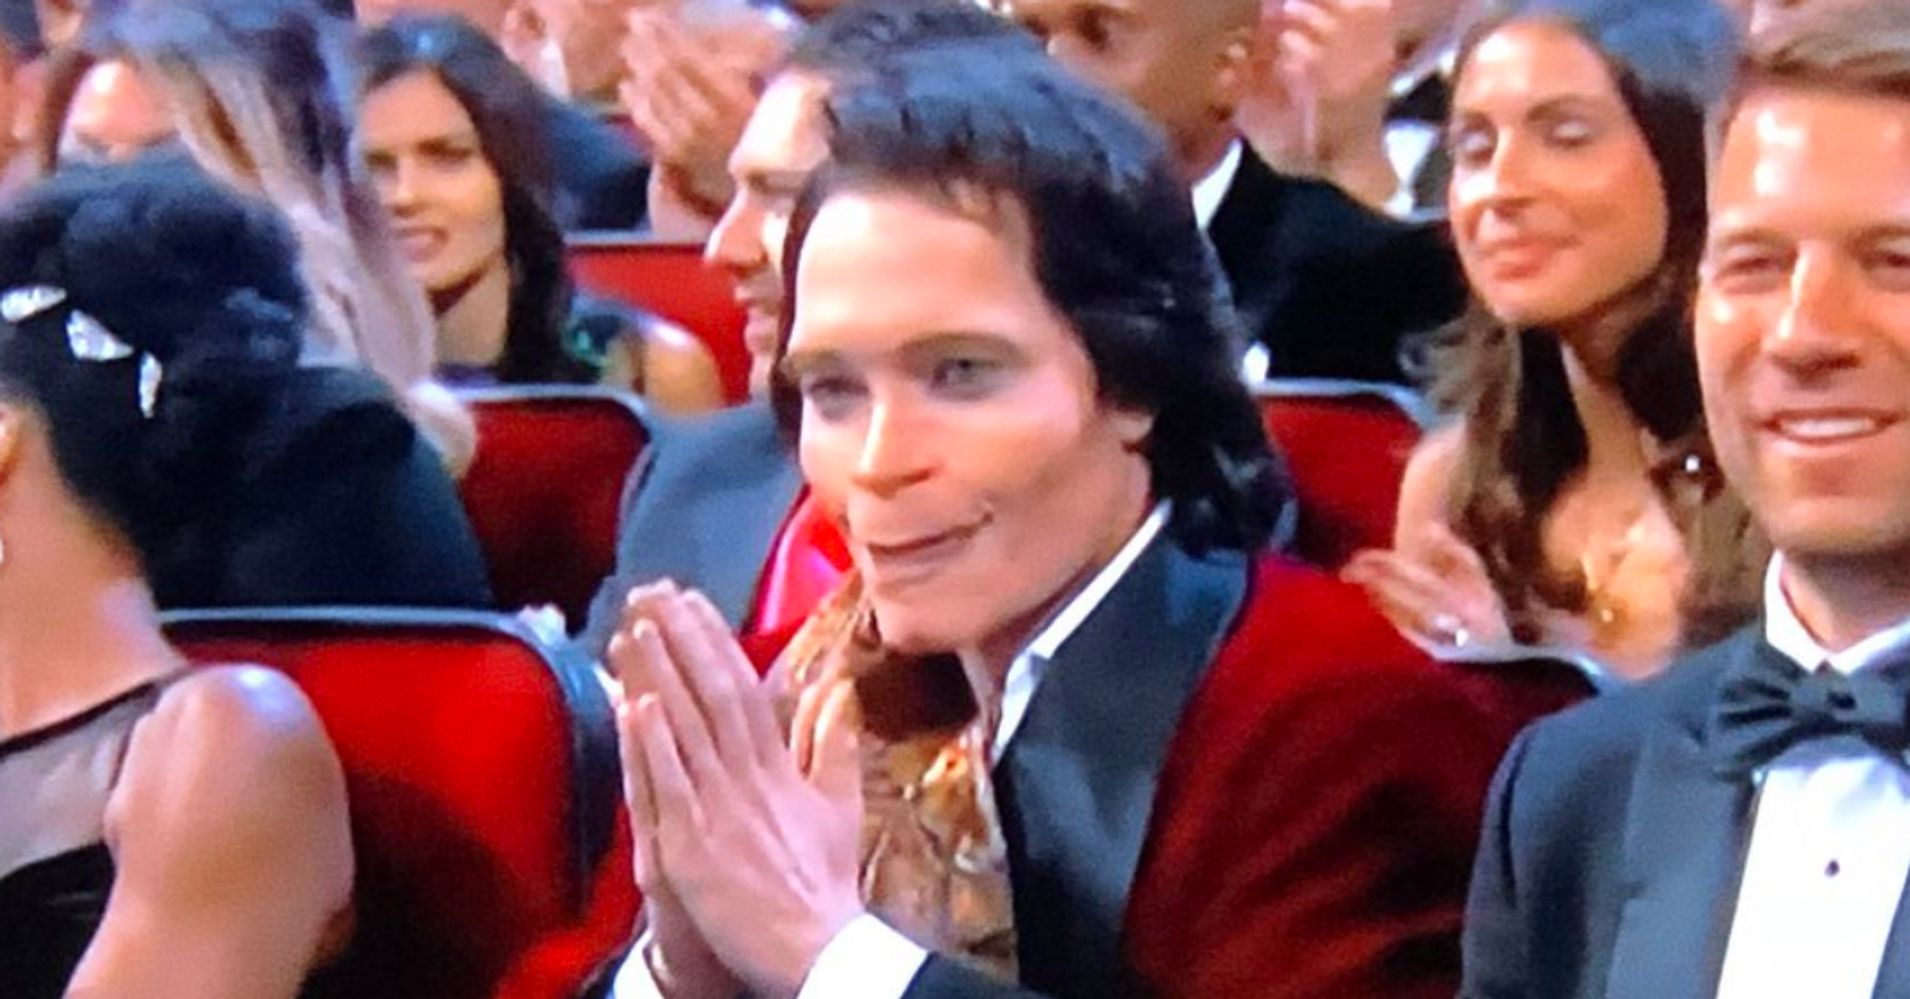 Yes, Teddy Perkins From 'Atlanta' Was Sitting Front Row At The Emmys